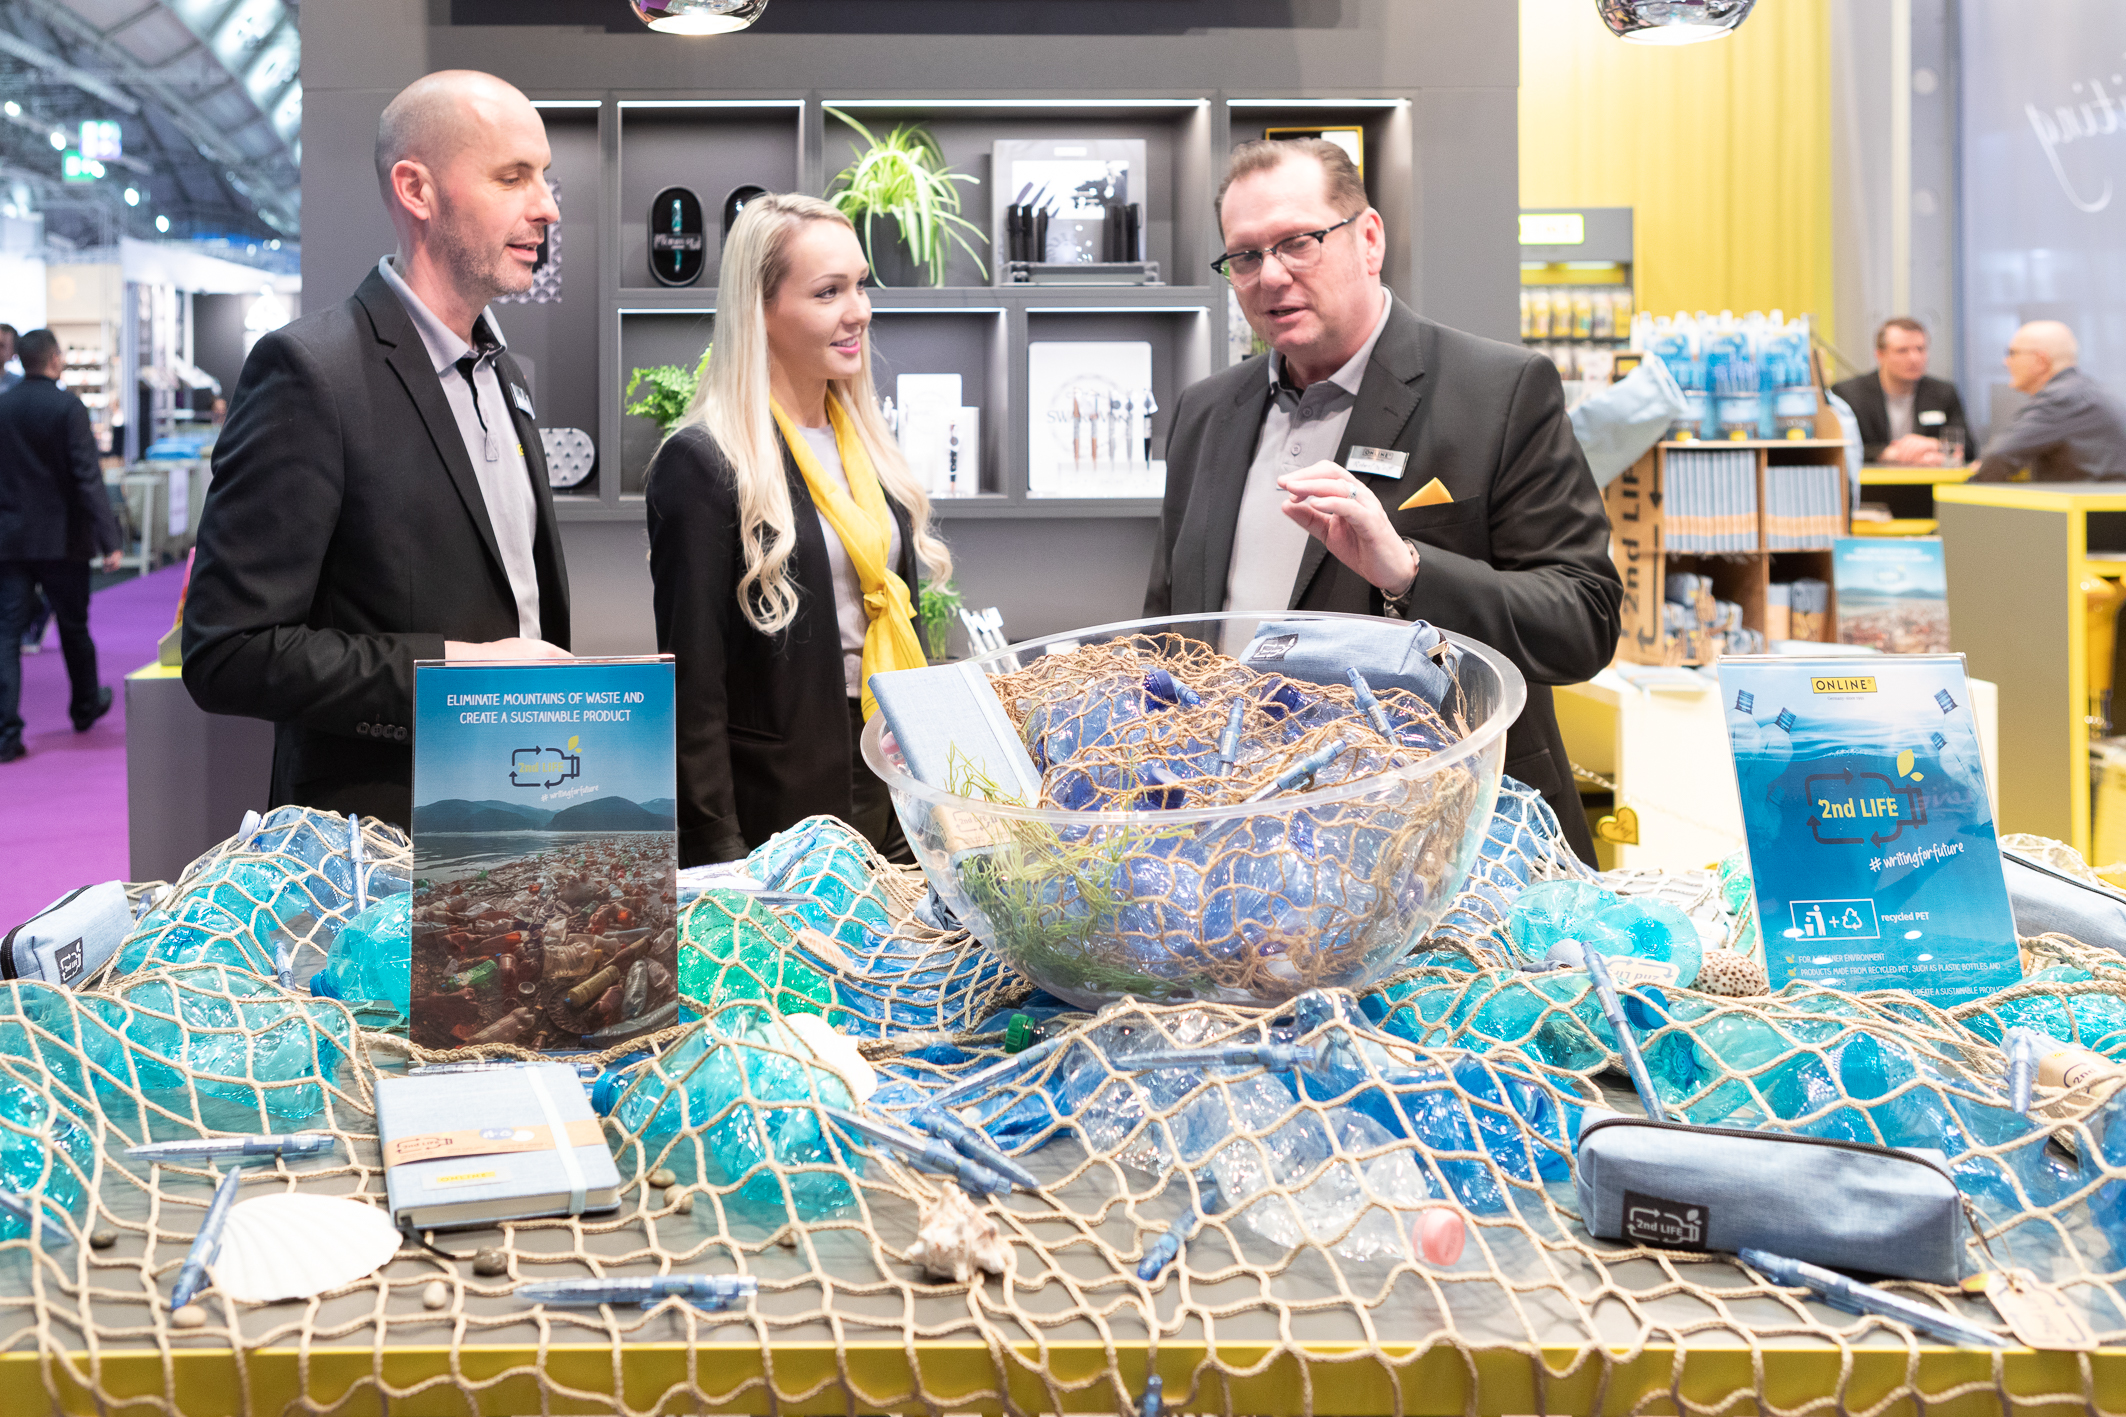 Exhibitors present their sustainable products - for example pens, pencil cases and notebook covers made of recycled plastic. / Photo: Messe Frankfurt